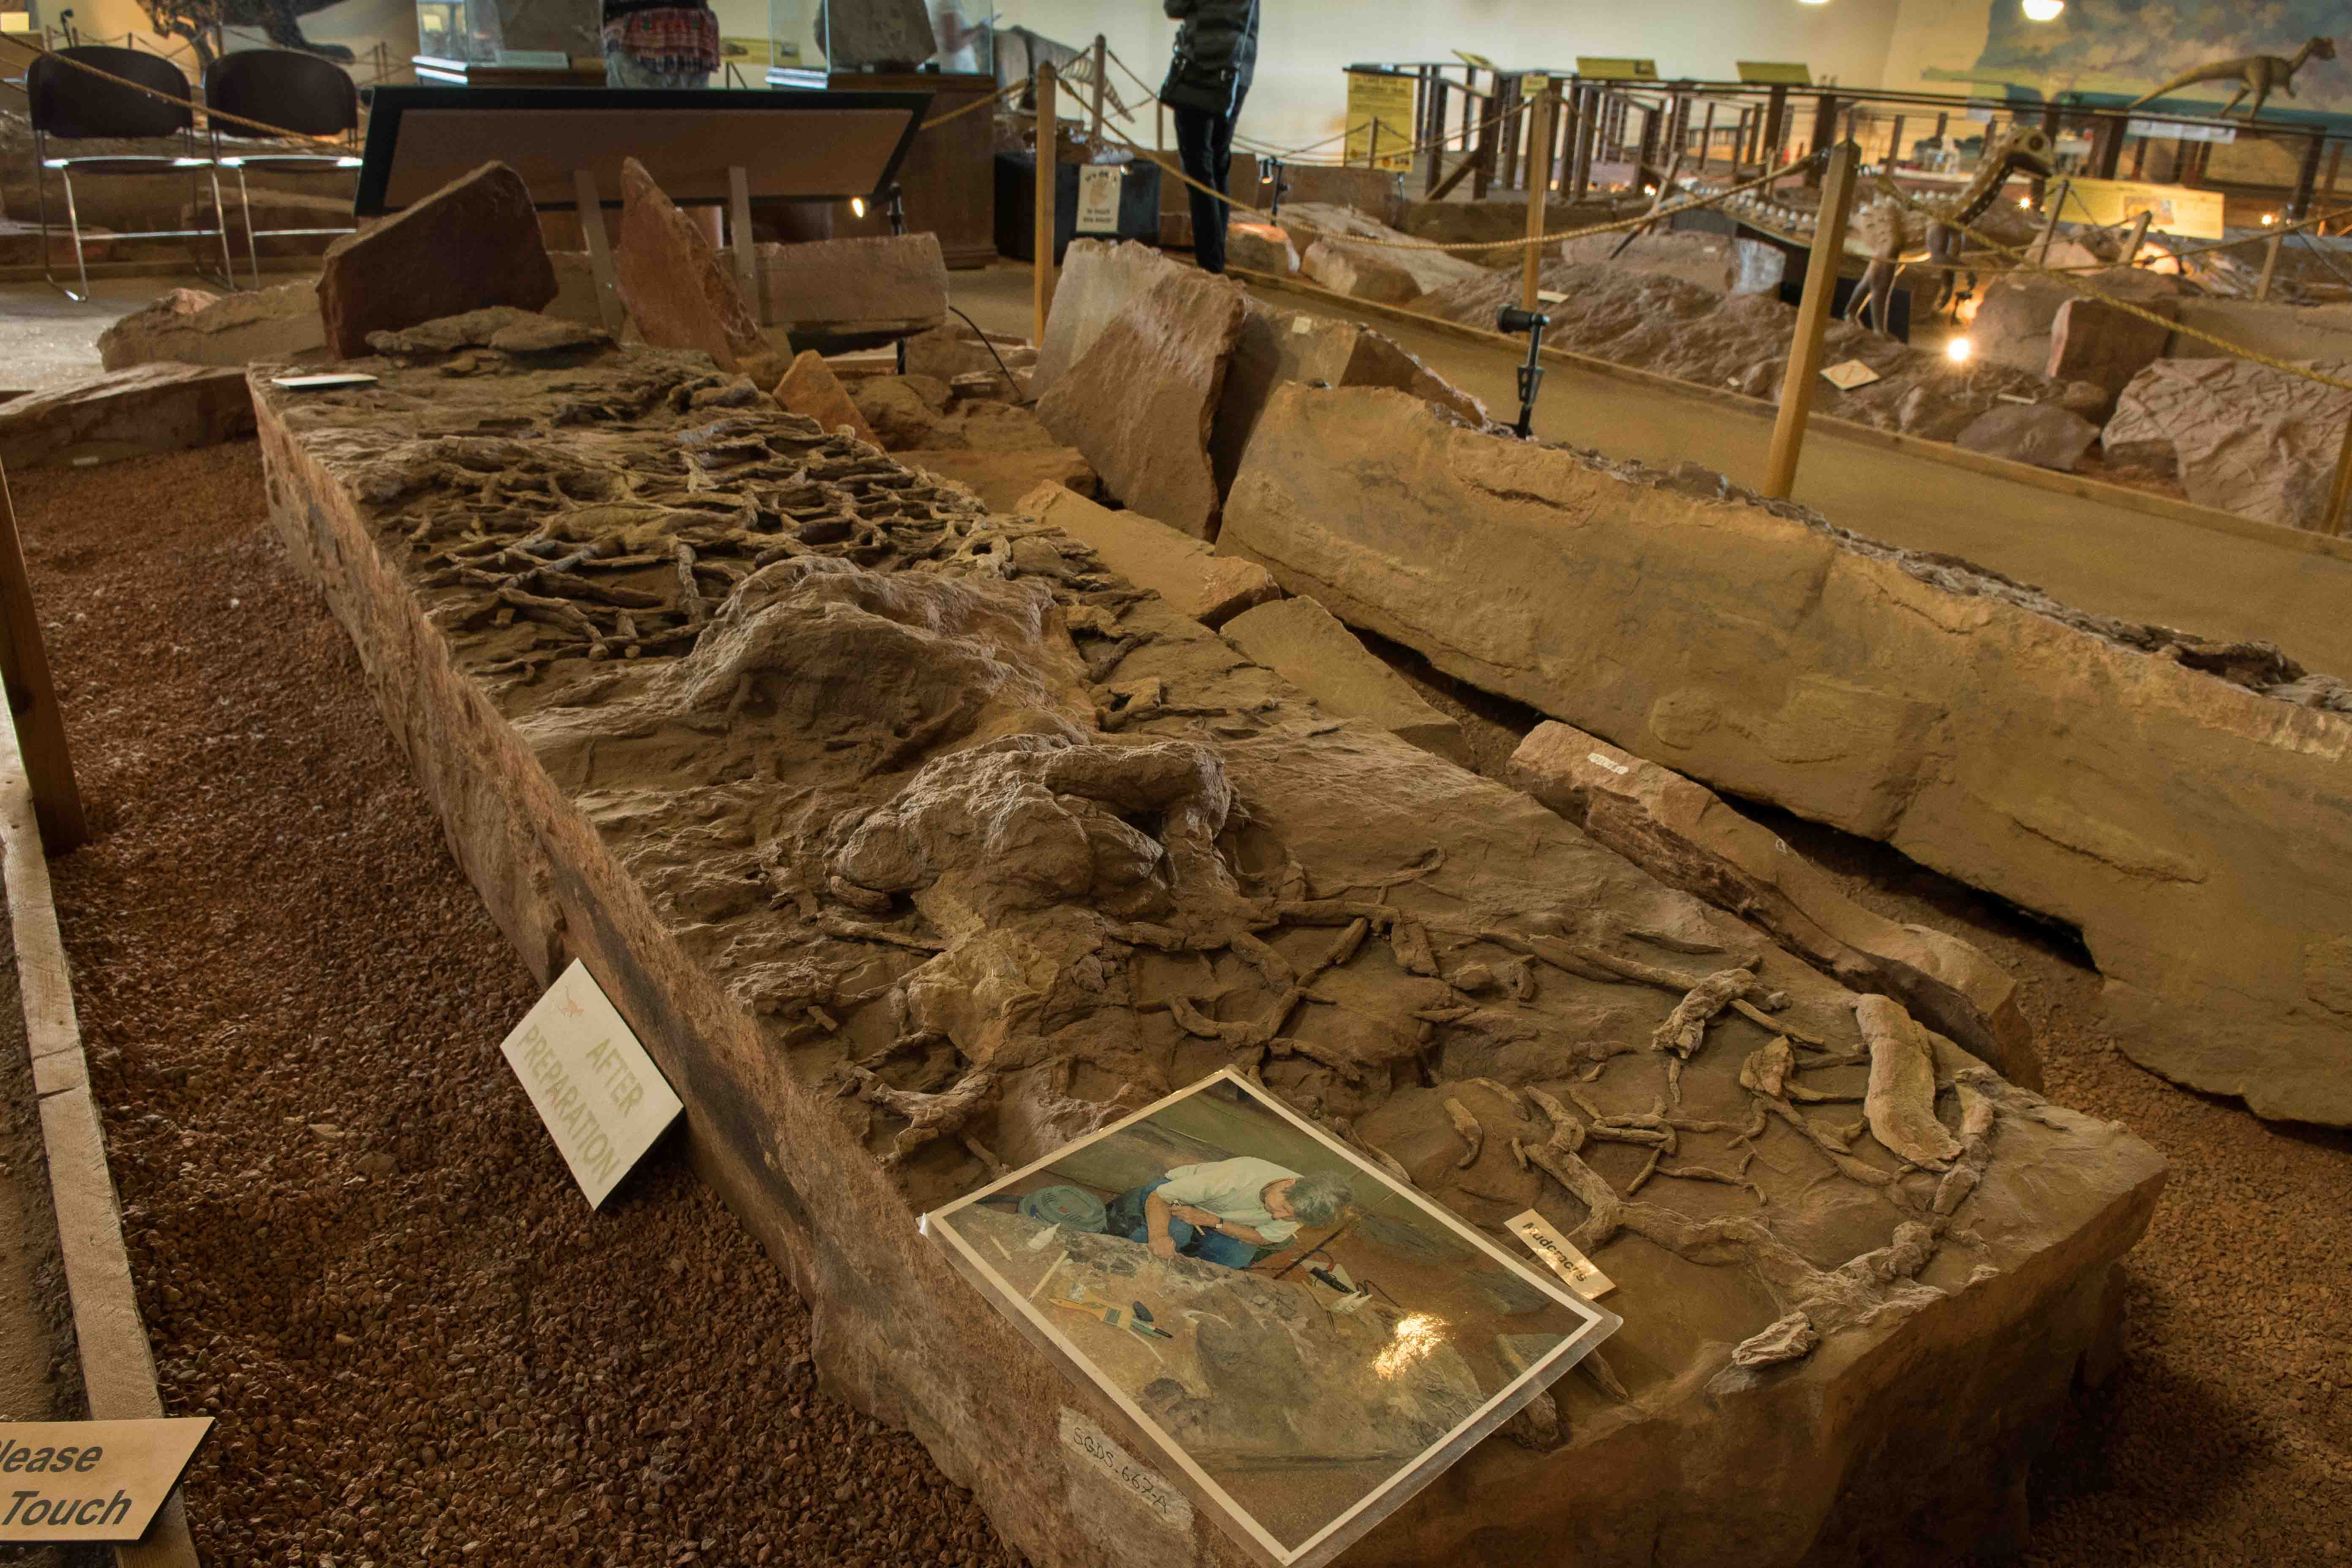 Slabs of dinosaur tracks prepped by volunteer. Photo in lower corner of slab shows work being done on slab prior to uncovering prints, Dinosaur Discovery Site, St. George, Utah, Oct. 31, 2016 | Photo by Jim Lillywhite, St. George News